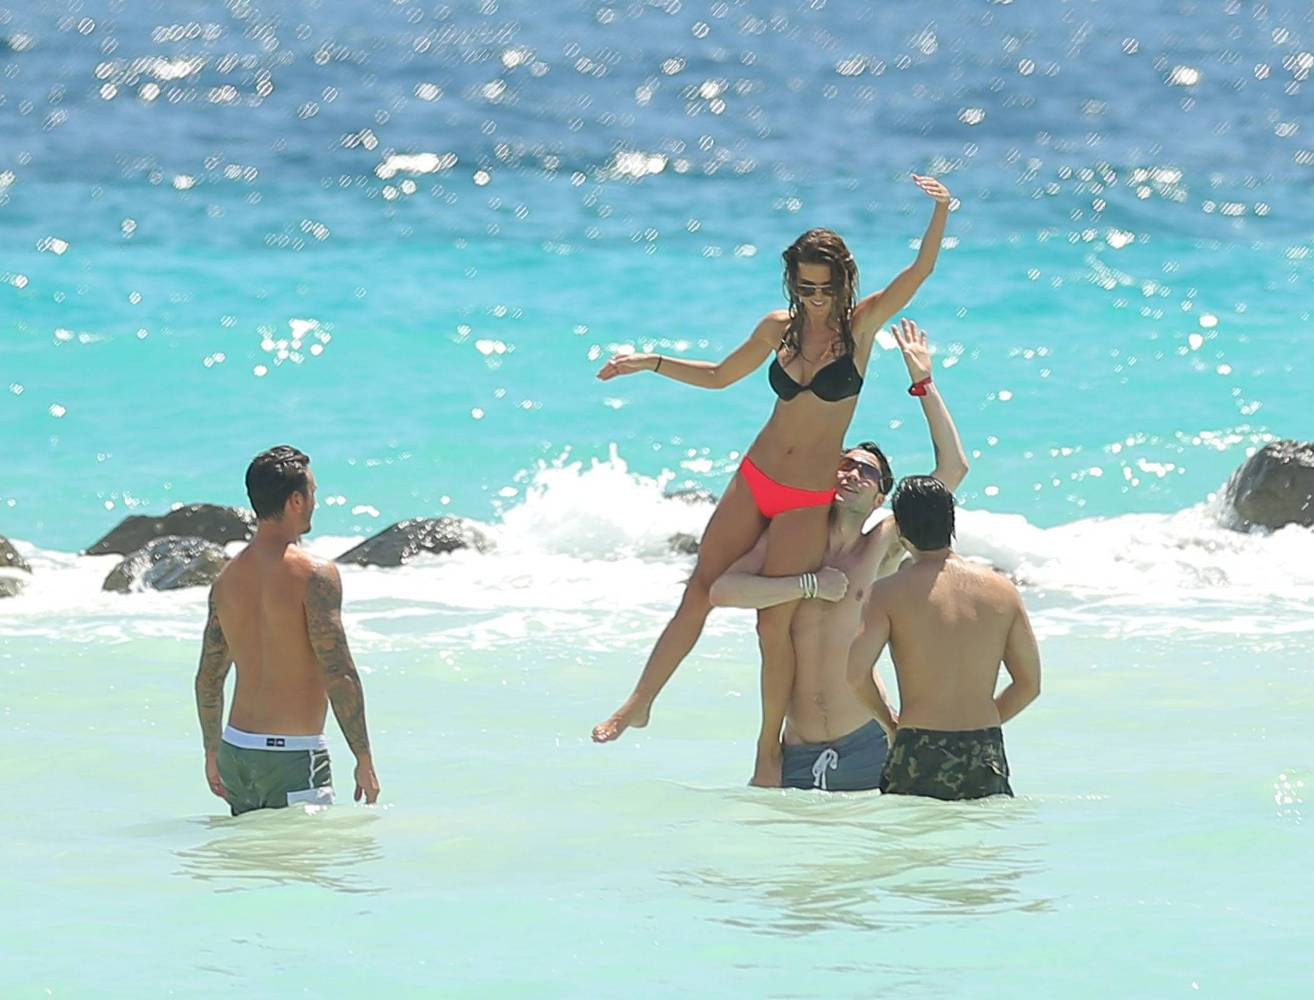 from Brenden audrina patridge at the beach with boyfiend